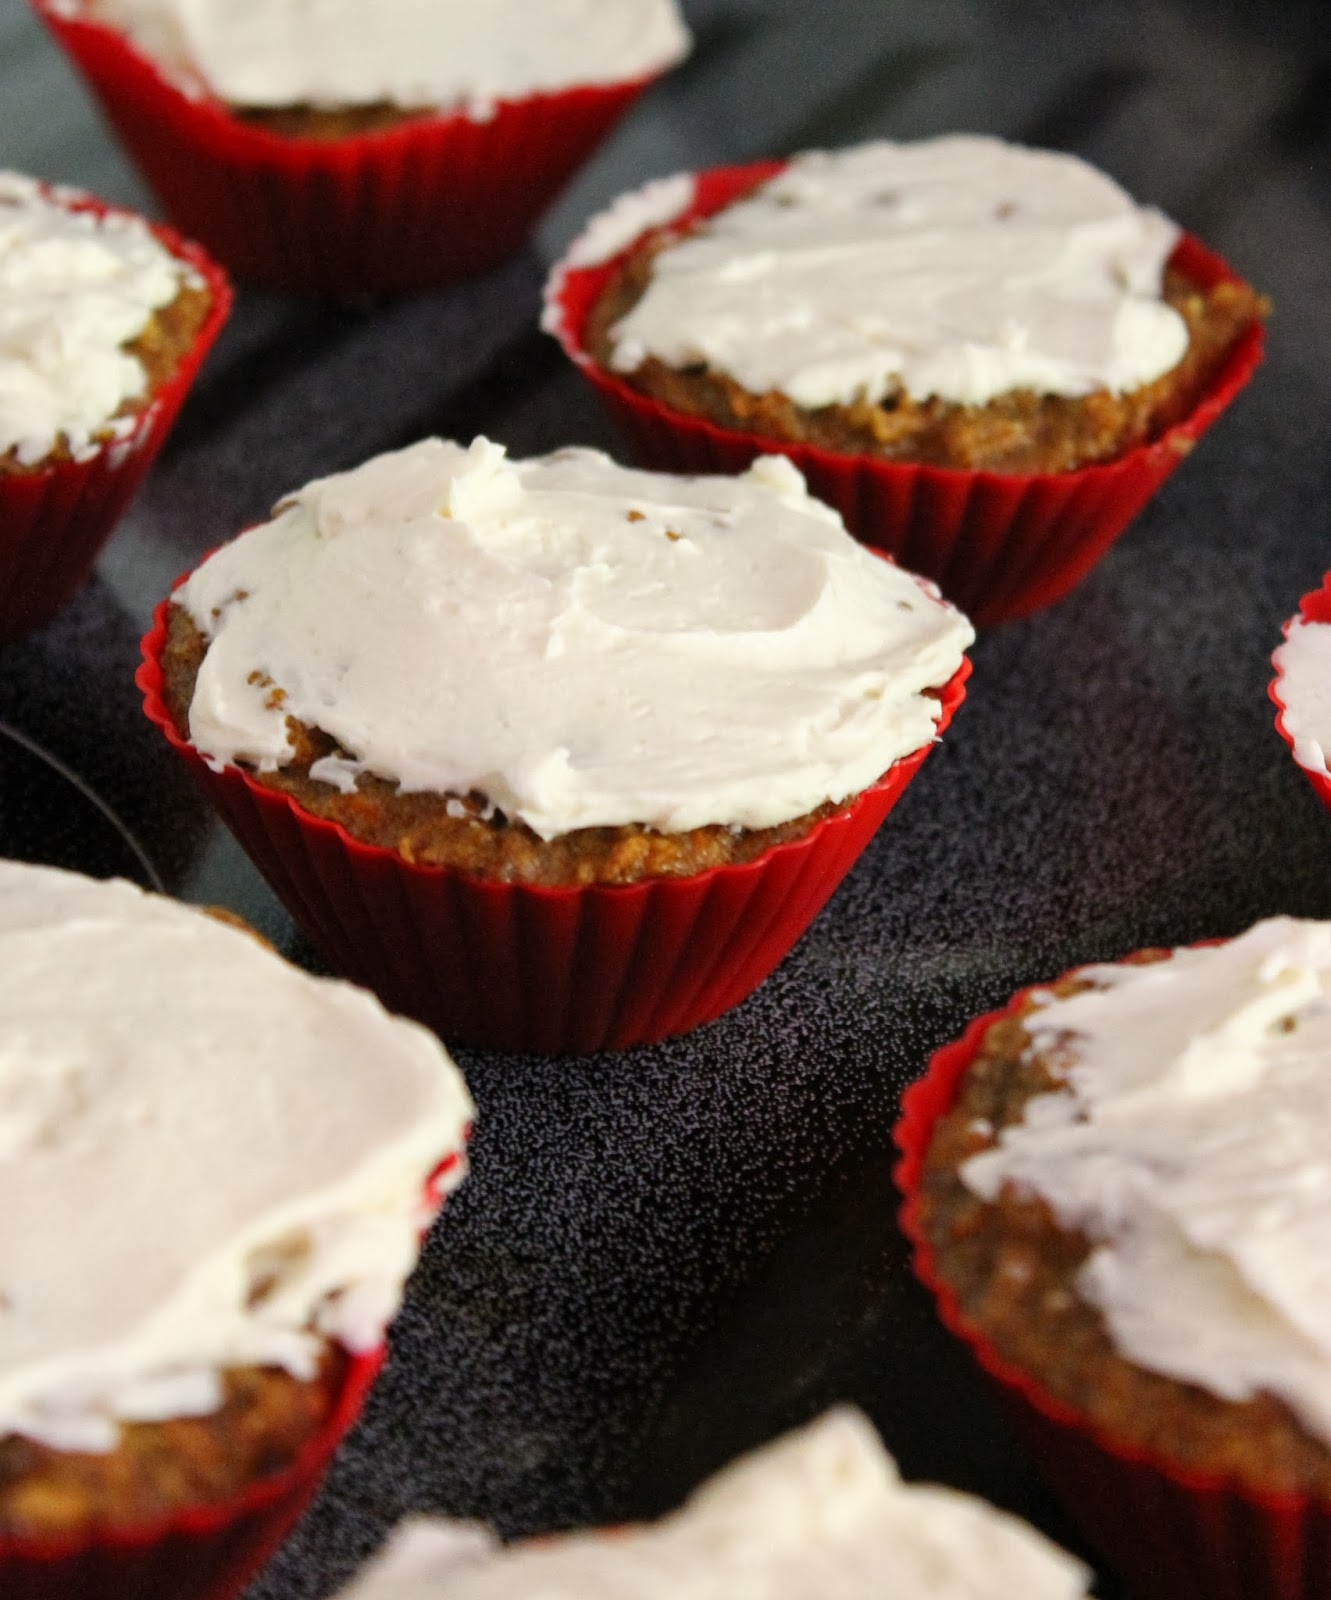 http://www.primalgardener.com/2013/10/fall-recipes-carrot-cupcakes.html